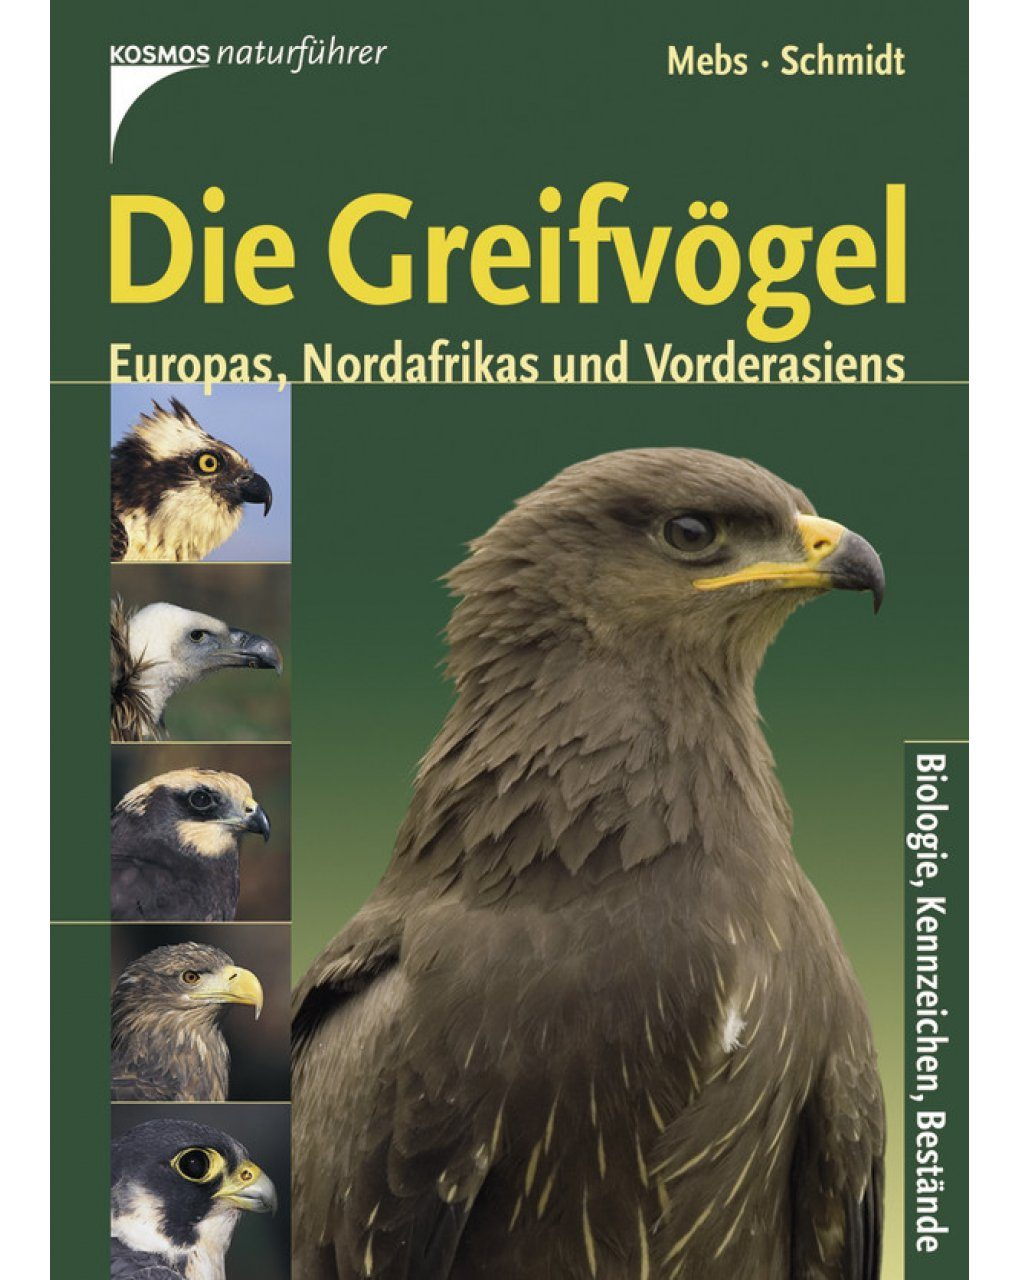 Die Greifvögel Europas, Nordafrikas und Vorderasiens: Biologie, Bestandsverhältnisse, Bestandsgefährdung [The Raptors of Europe, North Africa and Western Asia: Biology, Characteristics, Population Status and Population Threats]